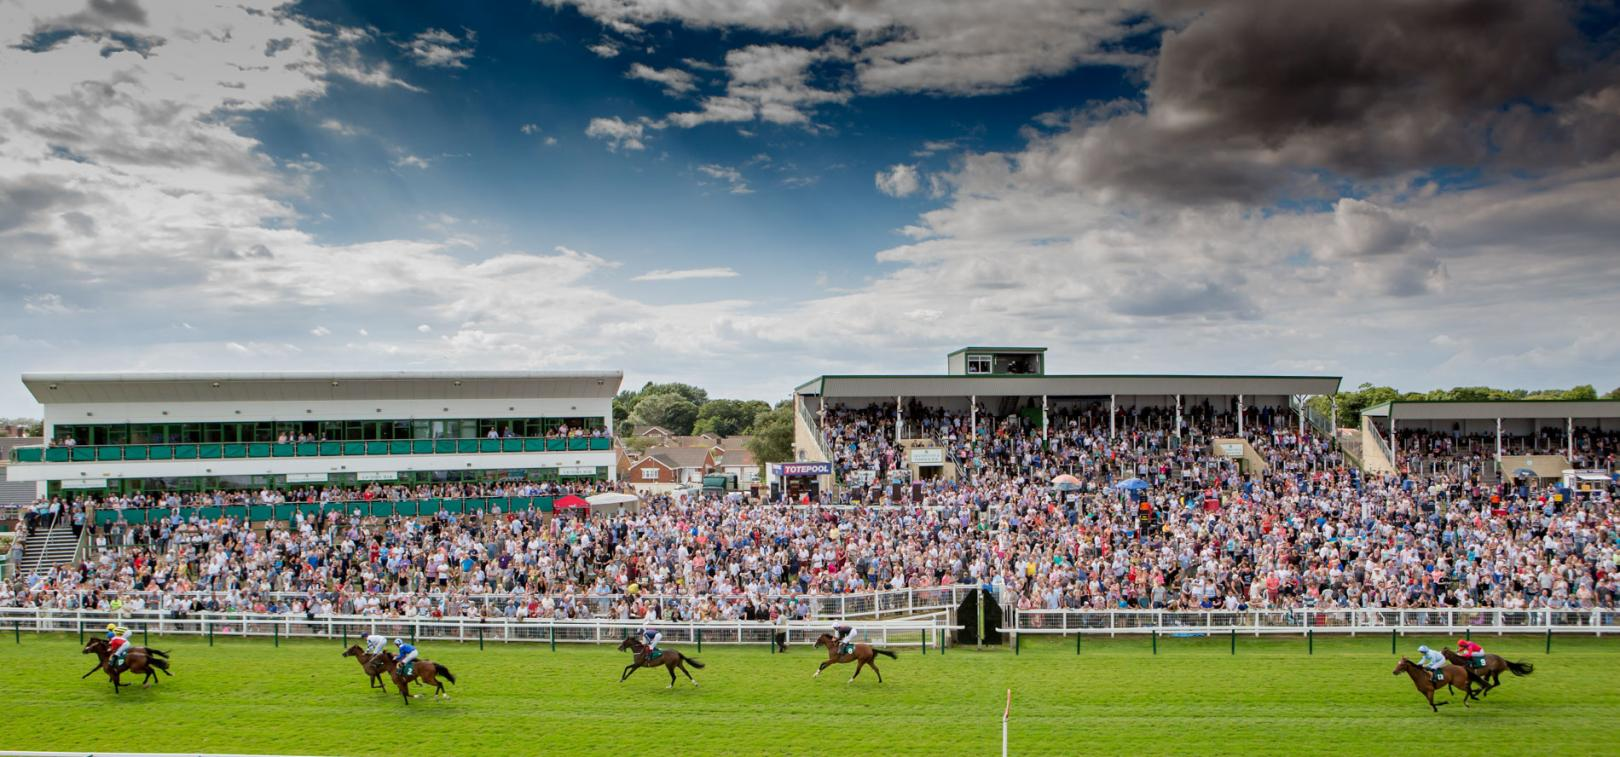 Great Yarmouth Racecourse Photography